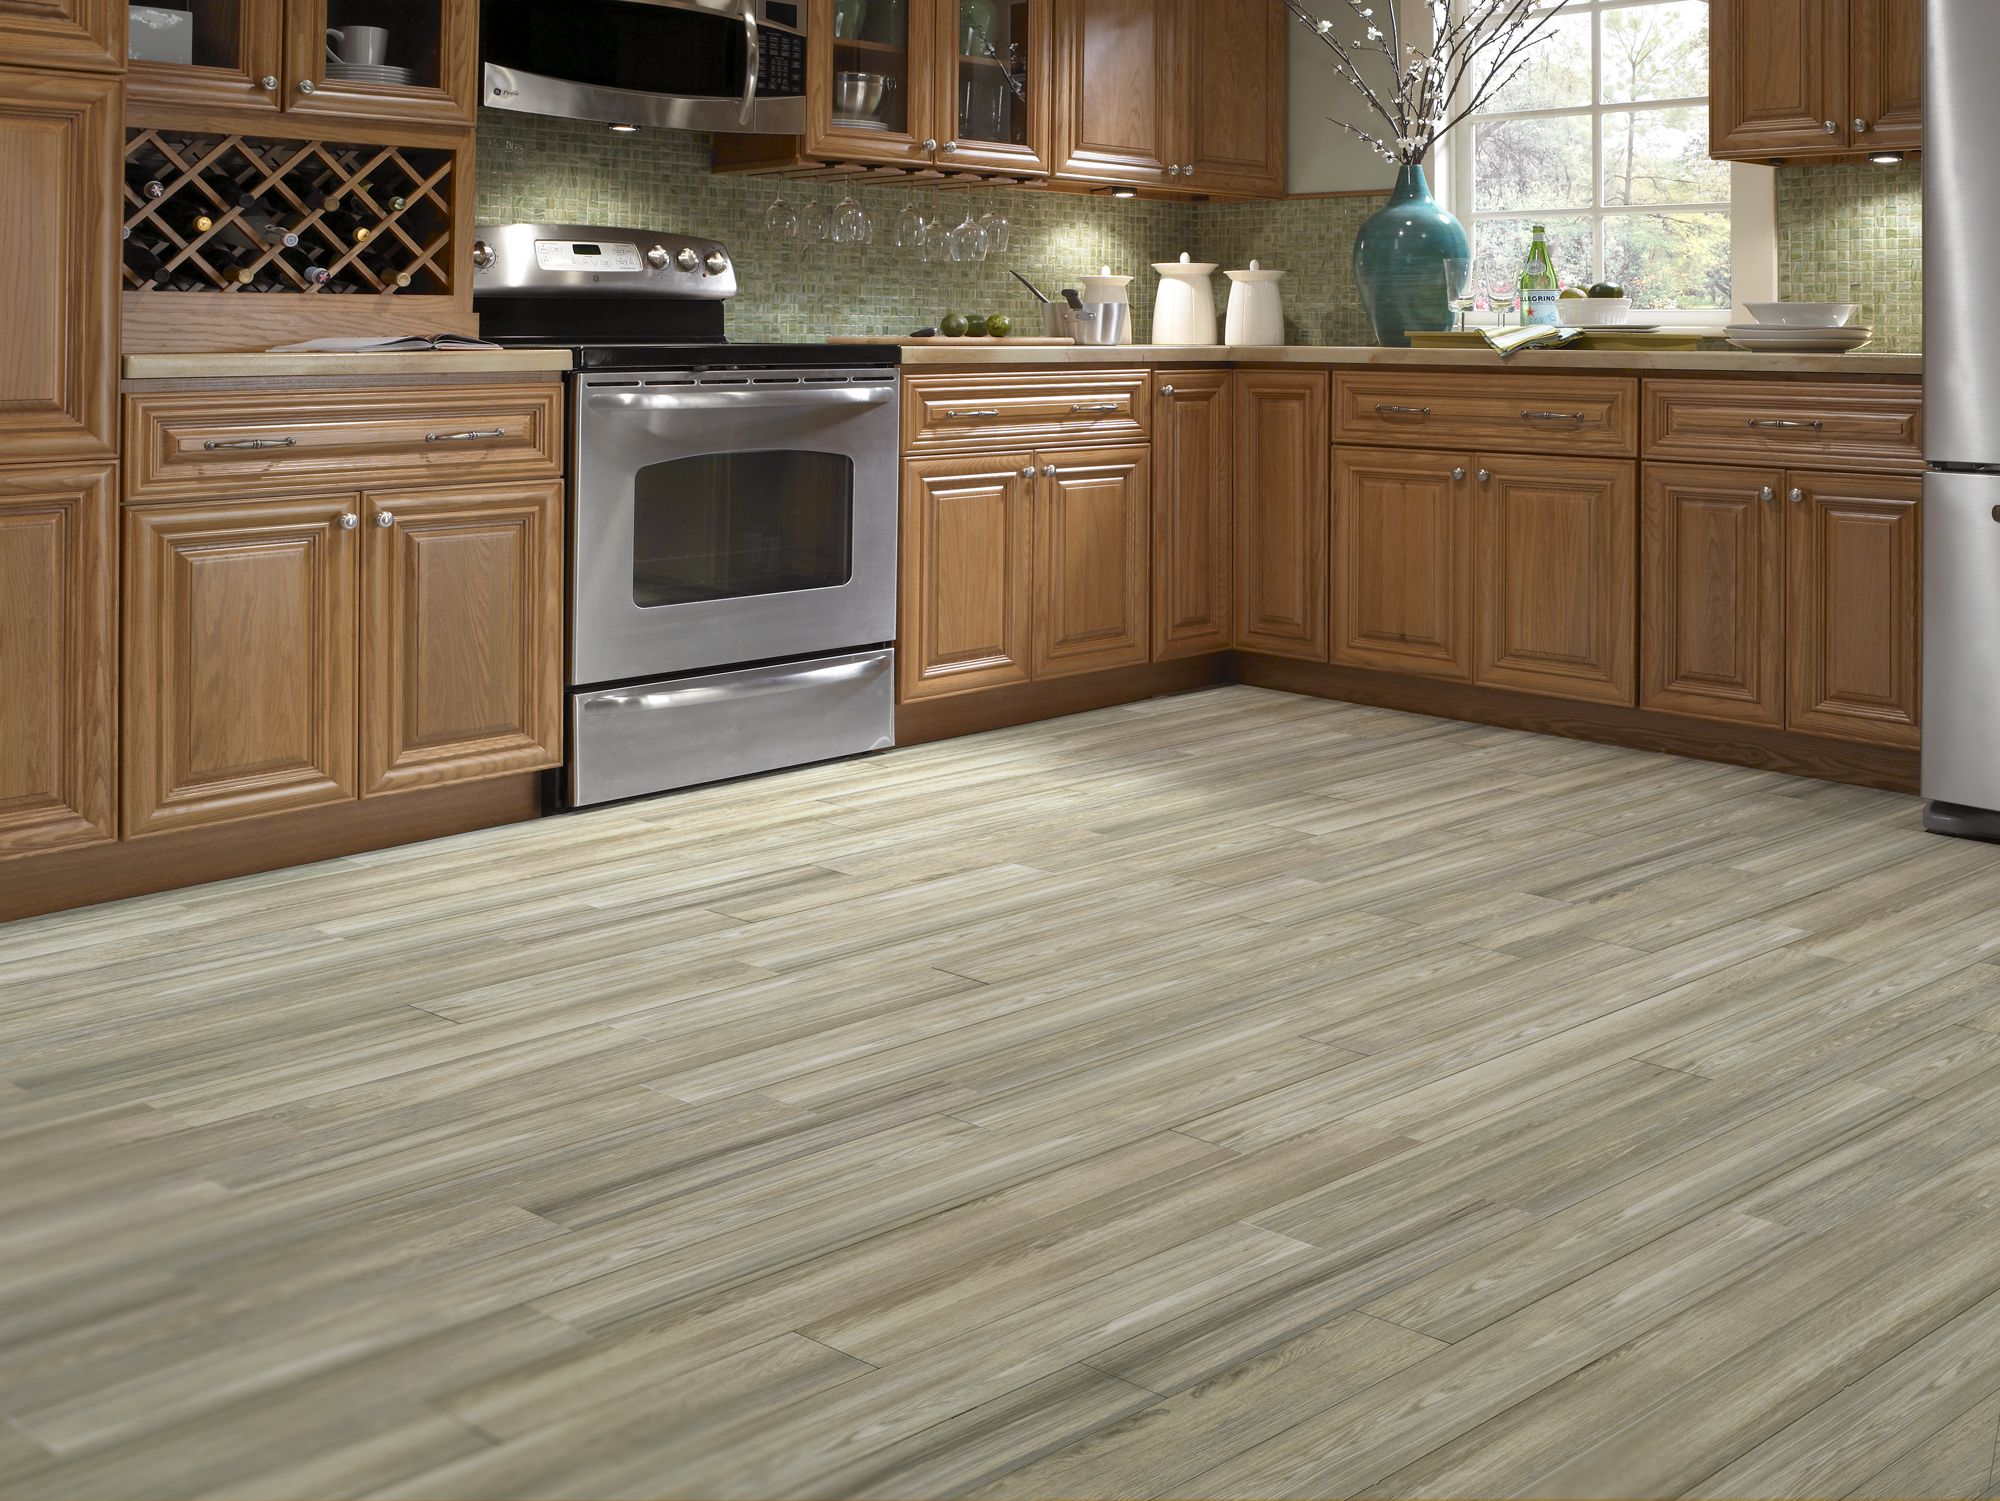 Cottage Wood Ash Porcelain Wood Look Tile Wood Tile Kitchen